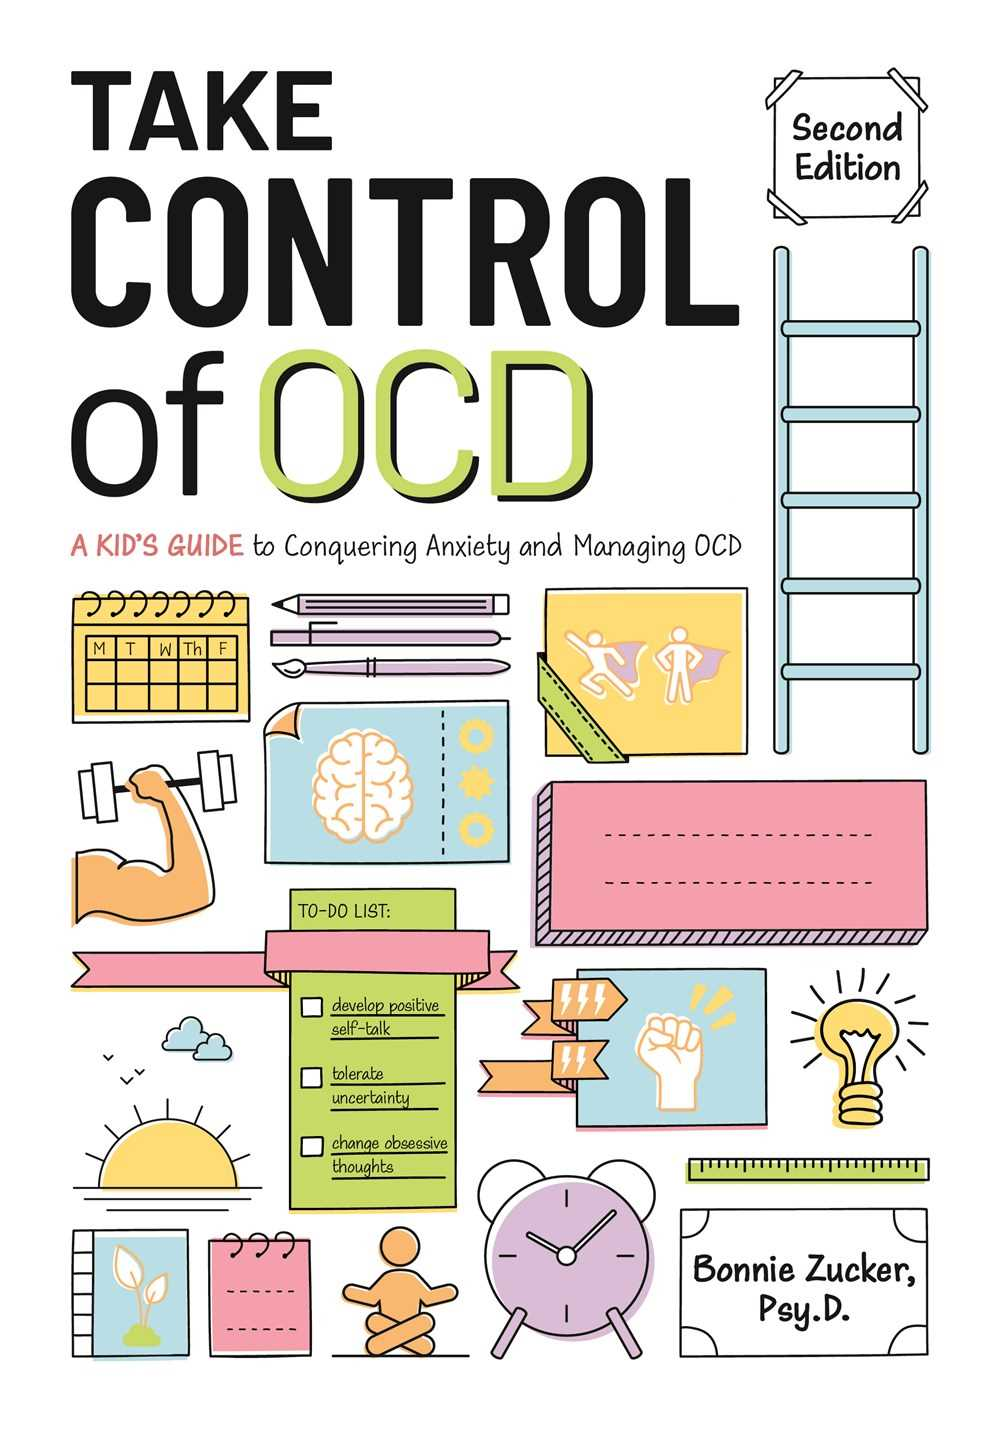 Take Control of OCD (2nd Edition)